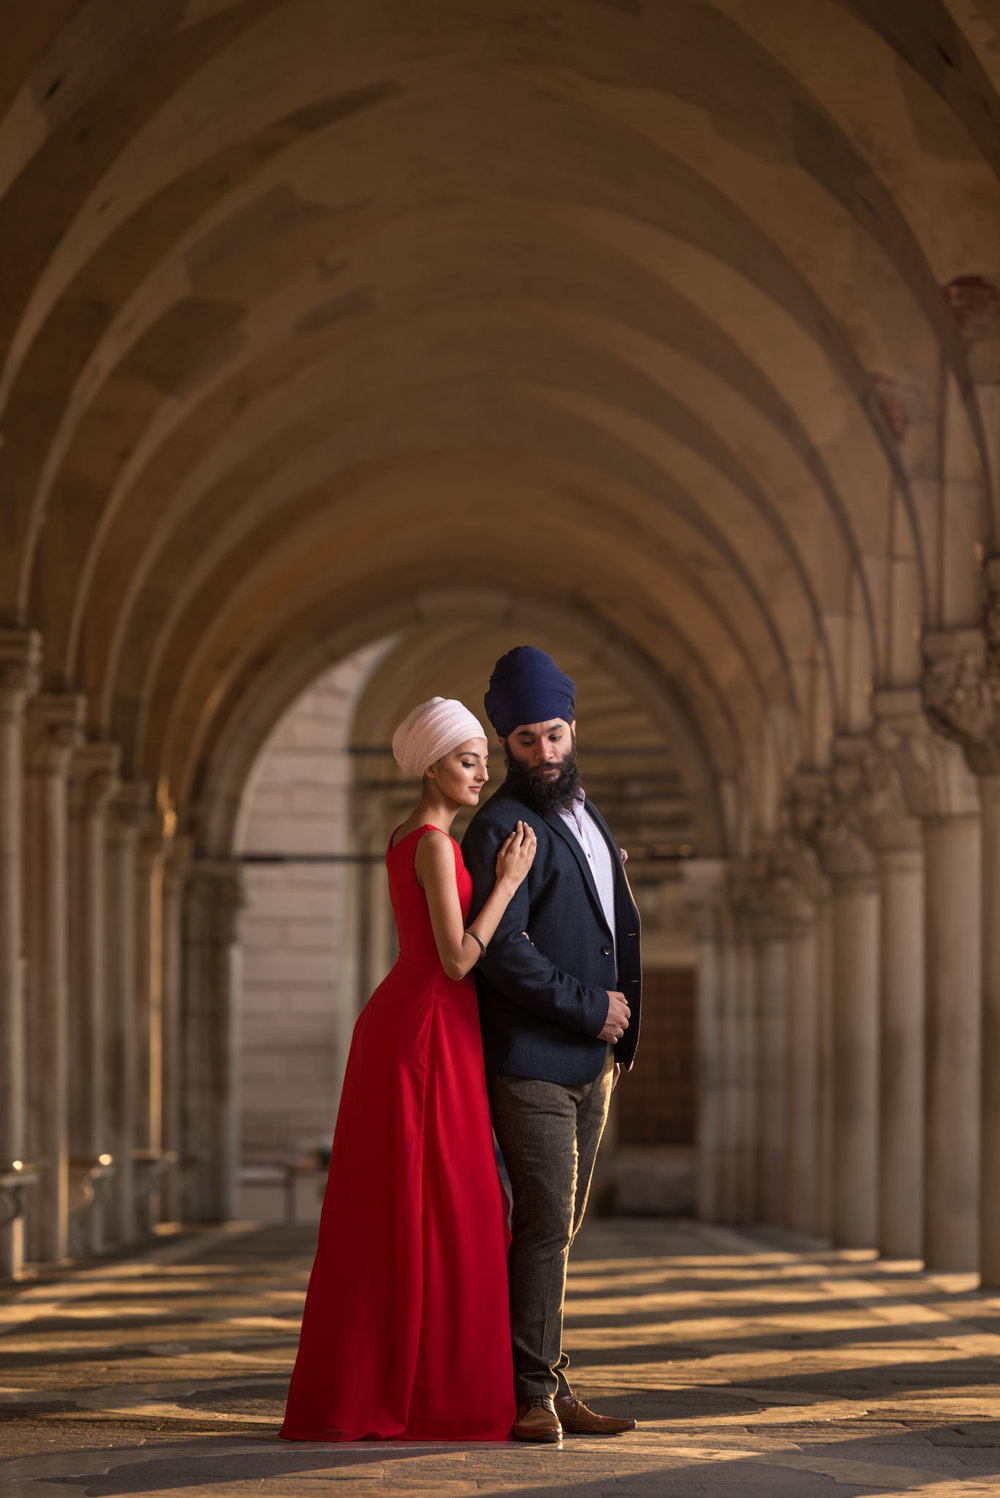 destination pre wedding shoot italy sikh wedding photography-23.jpg